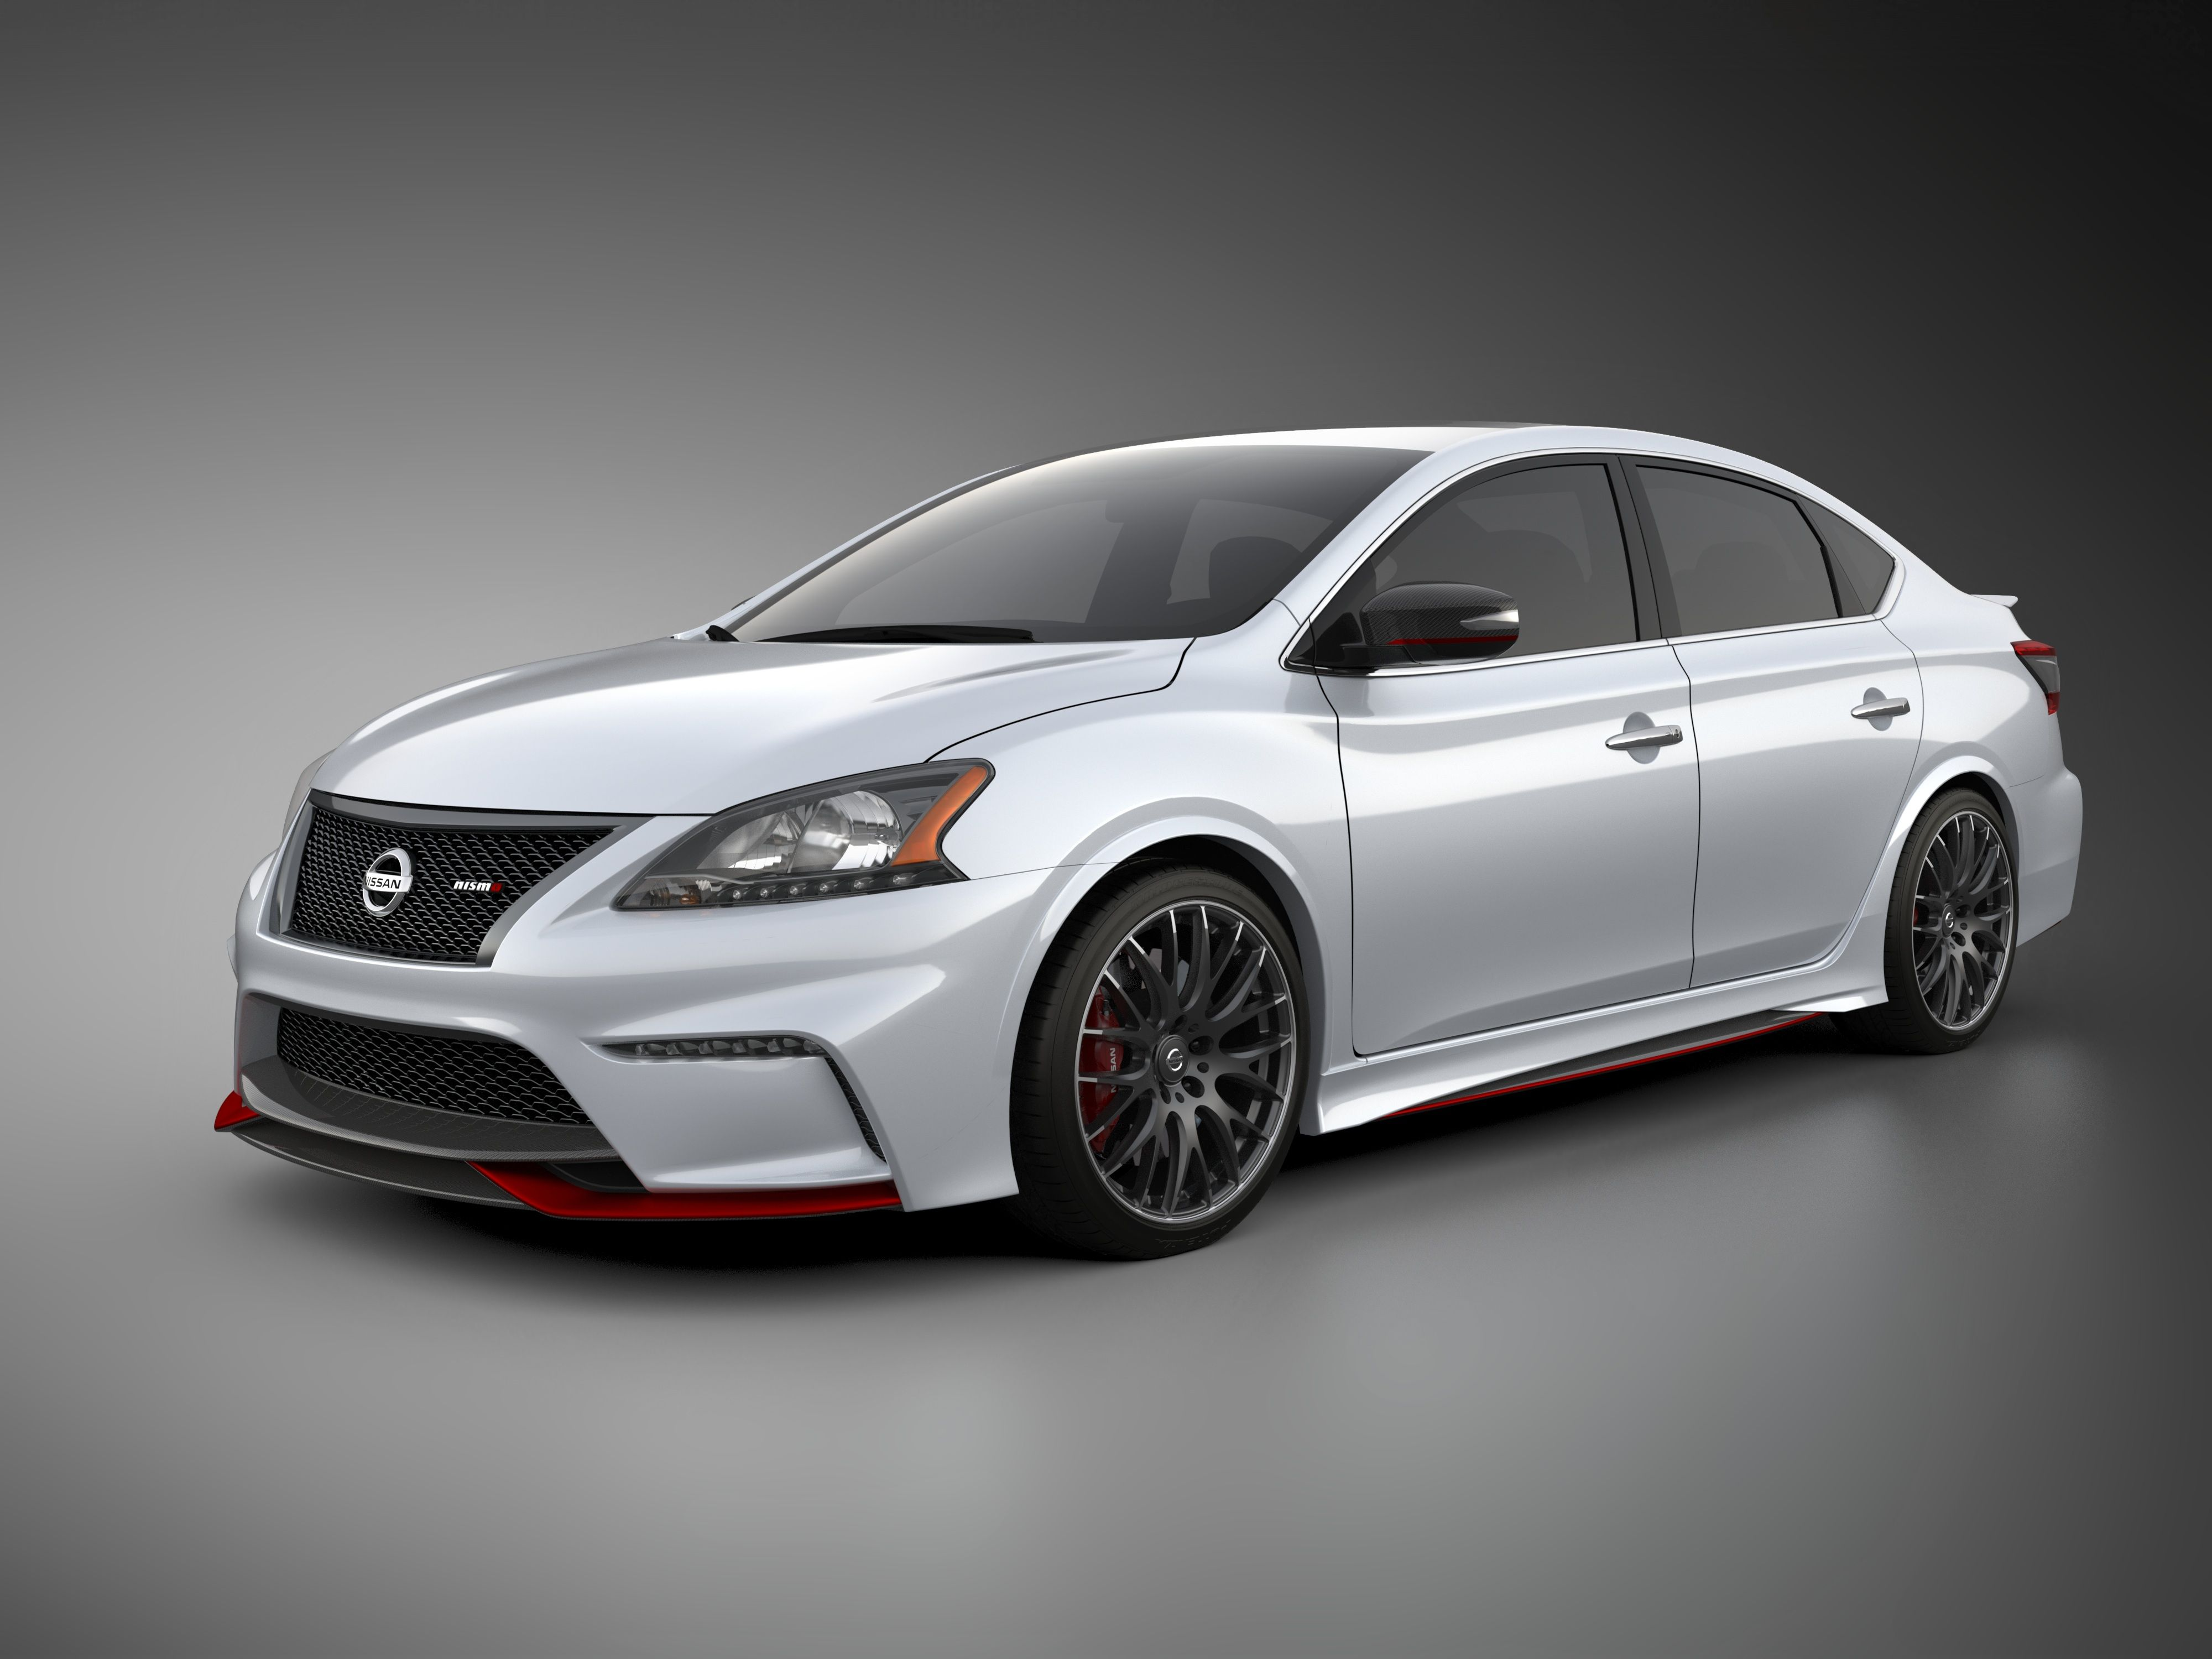 Nissan Sentra NISMO Concept is built on the foundation of the Nissan